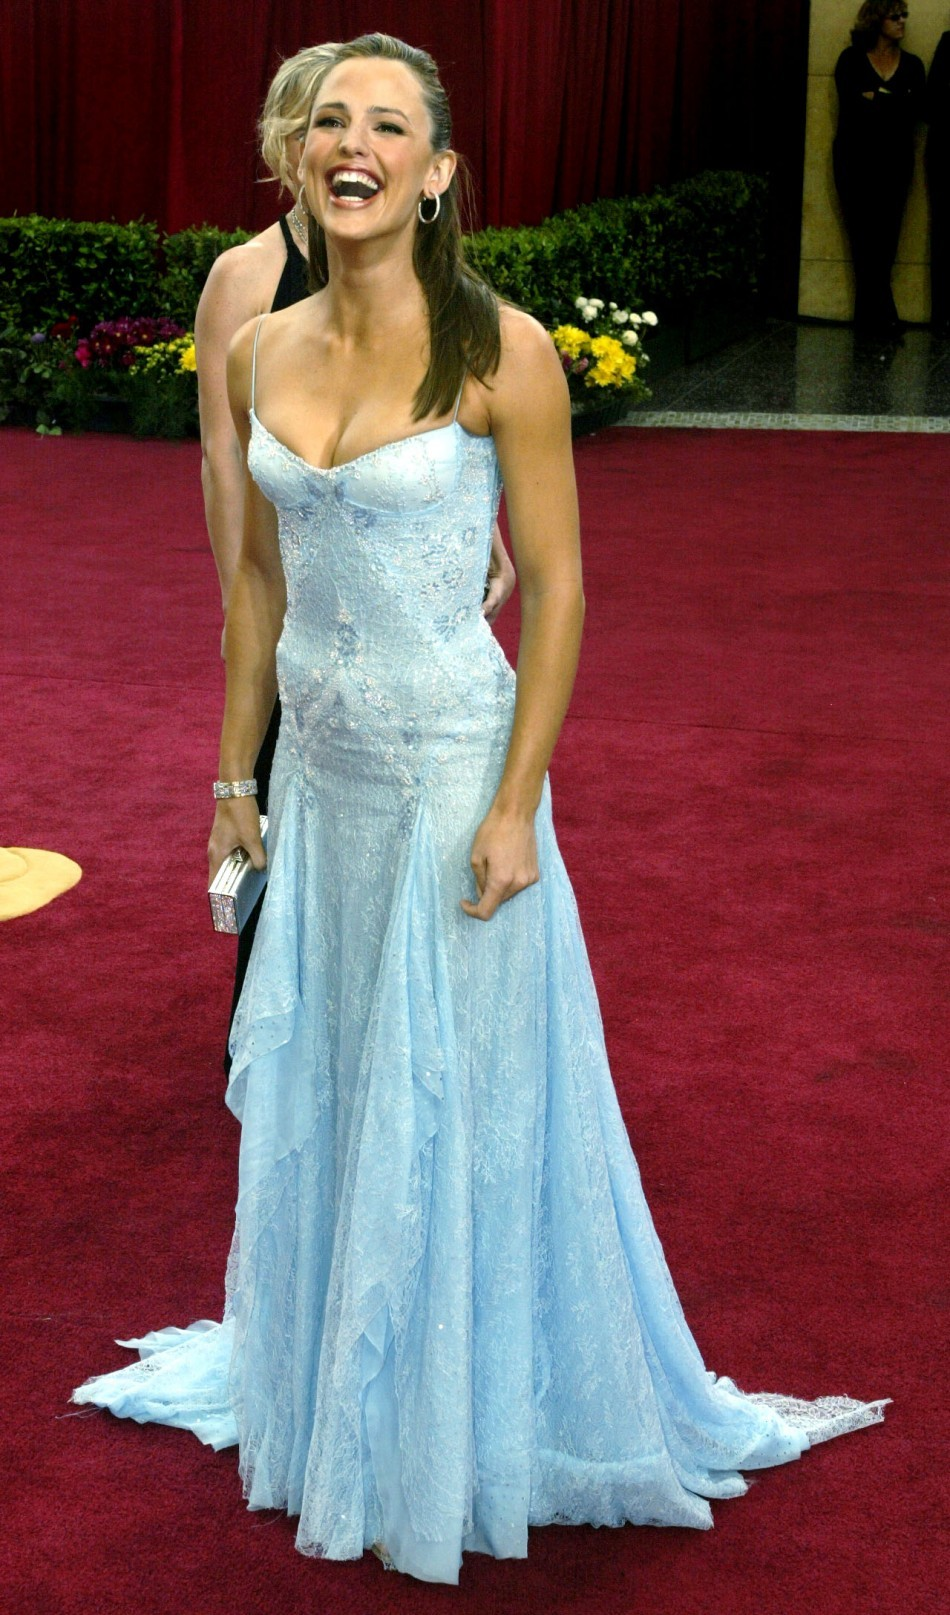 Oscar Awards Red Carpet Hottest Outfits in the Last Decade: Dressed ...